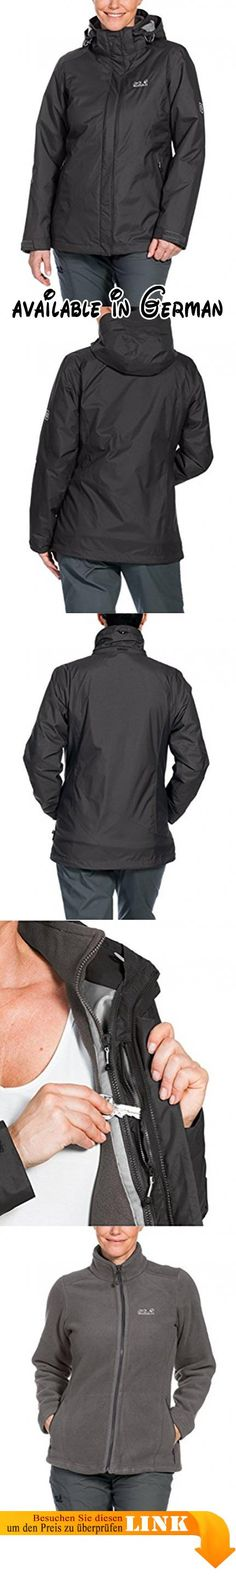 Jack Wolfskin Damen 3-in-1 Jacke Arborg Jacket, Dark Steel, M, 1105701-6032003. 3-in-1-Wanderjacke. wasserdicht, winddicht. atmungsaktiv. baumwollartig. warme Fleece-Innenjacke #Sports #OUTDOOR_RECREATION_PRODUCT